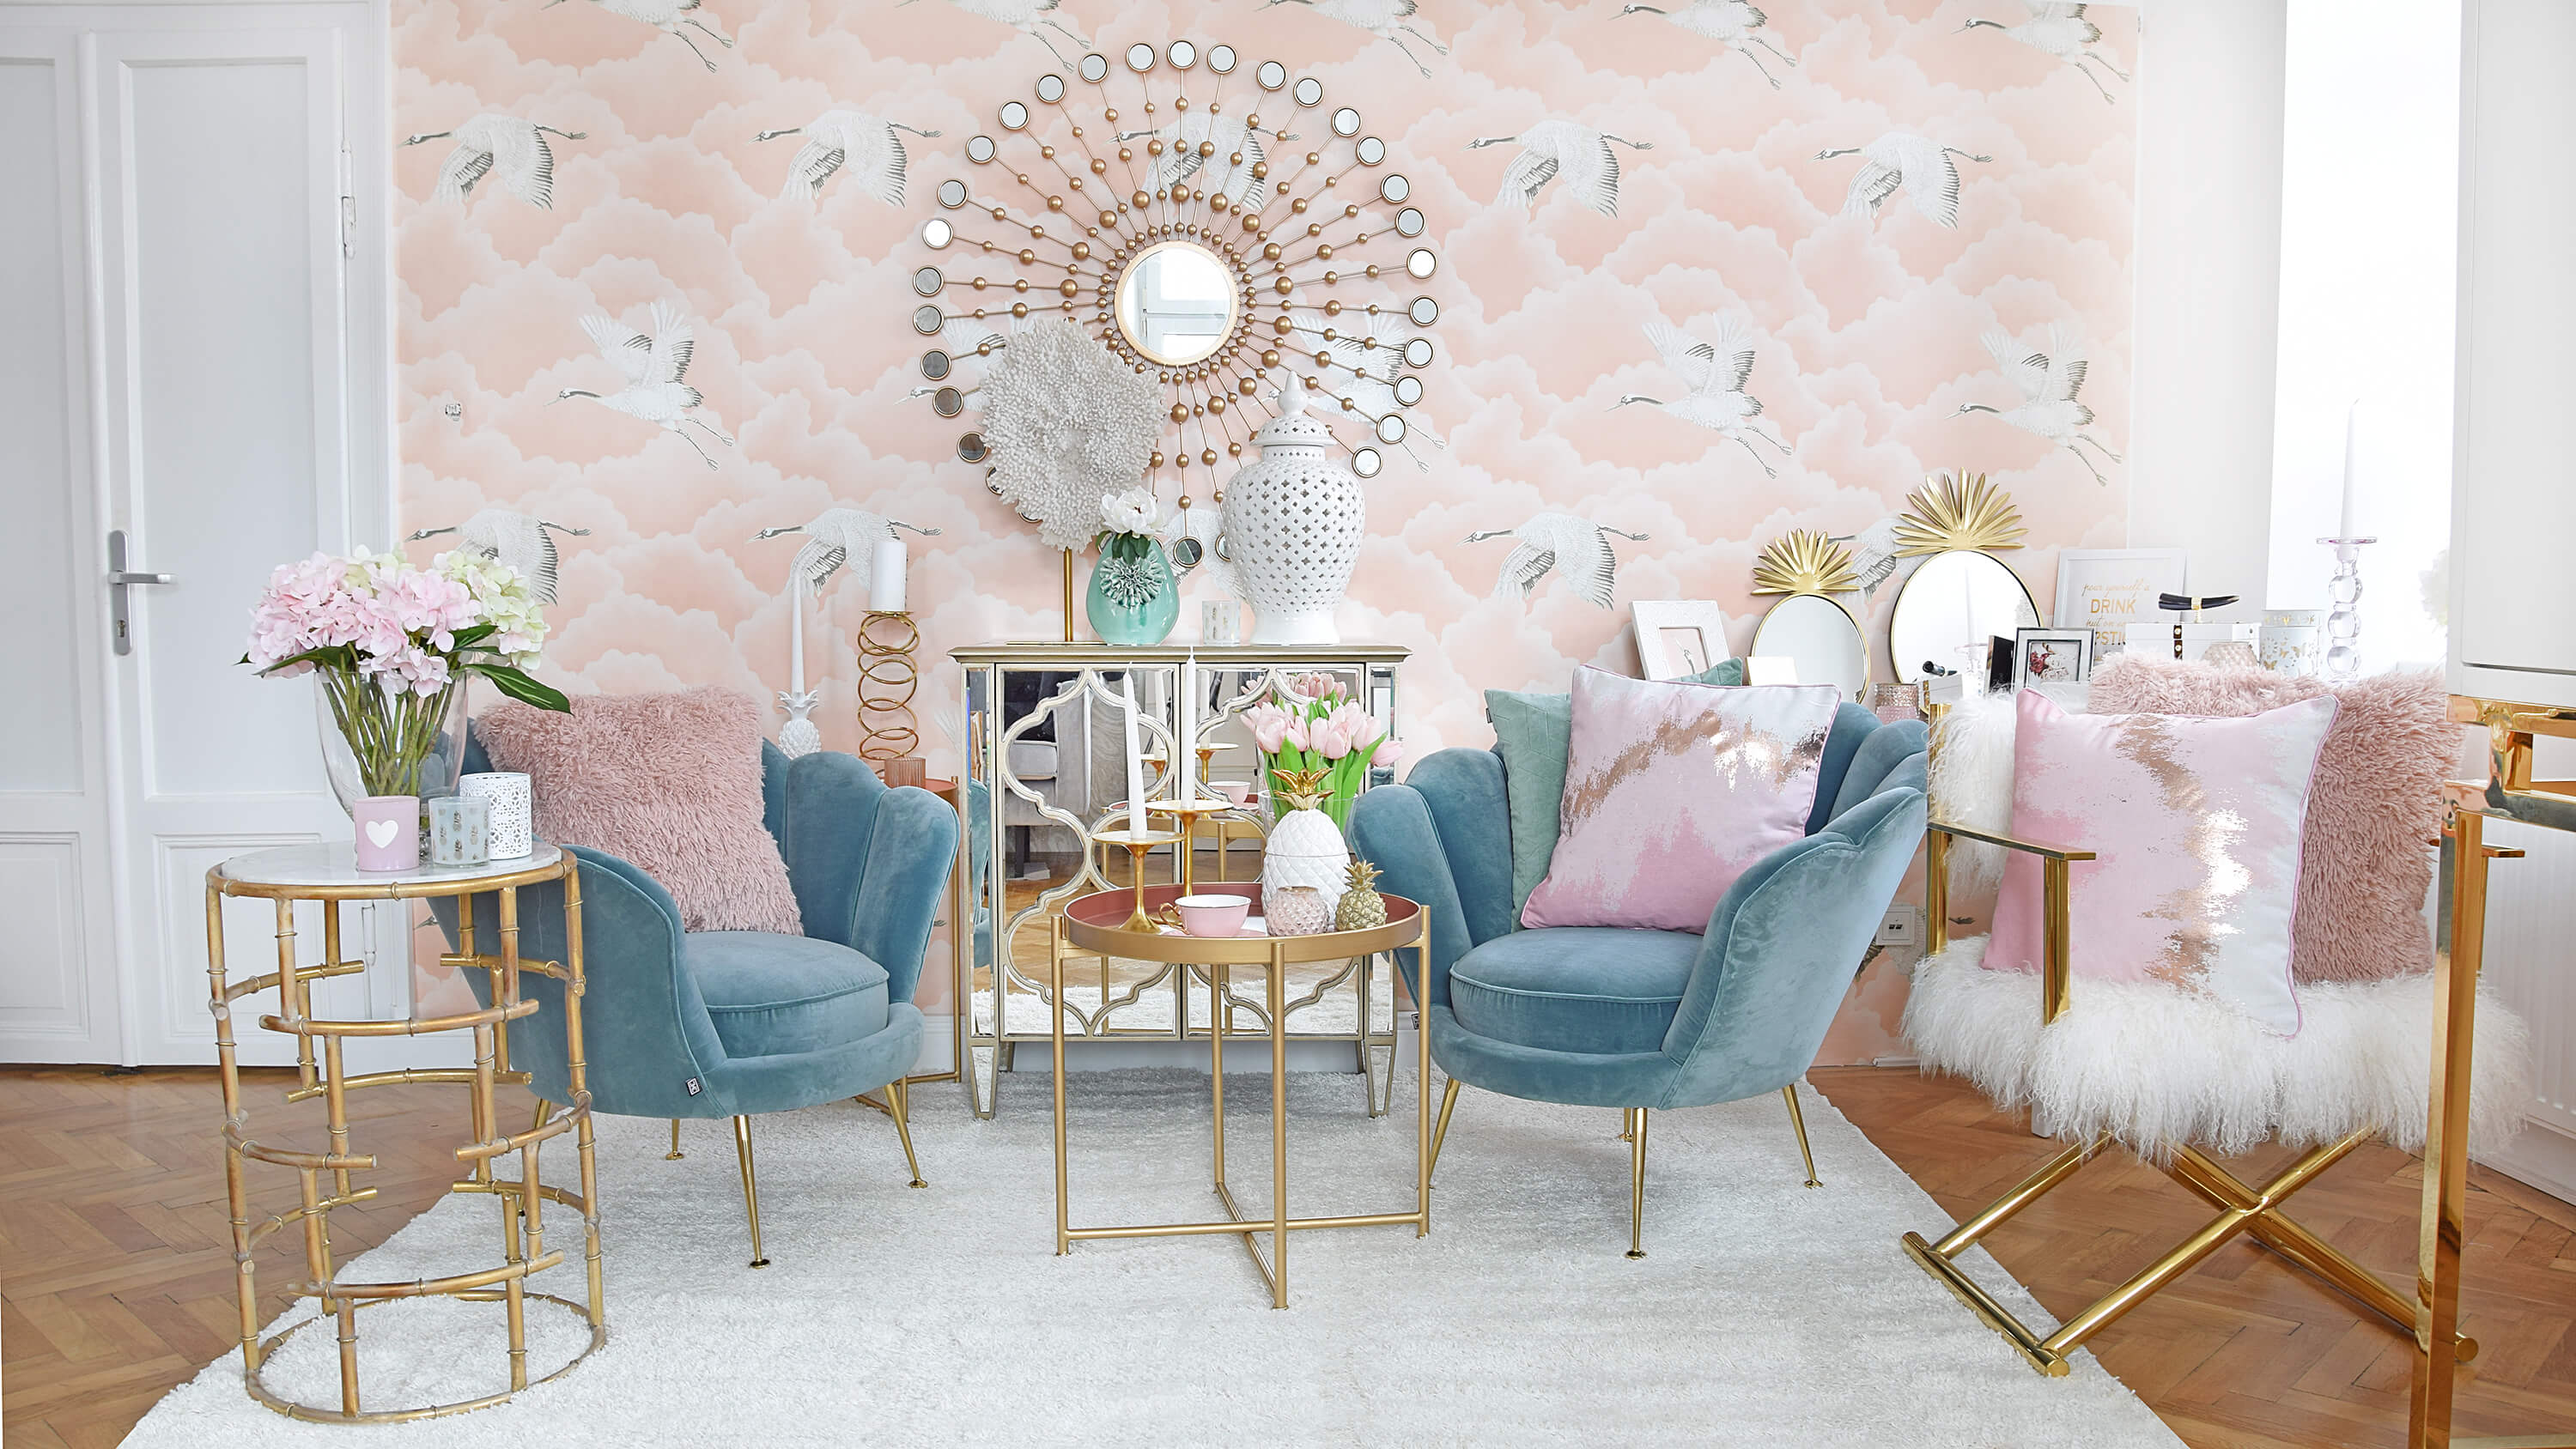 Rosa Accessoires Schlafzimmer Mermaid Dreams Wohnzimmer Lounge In Rosa Türkisblau Looks